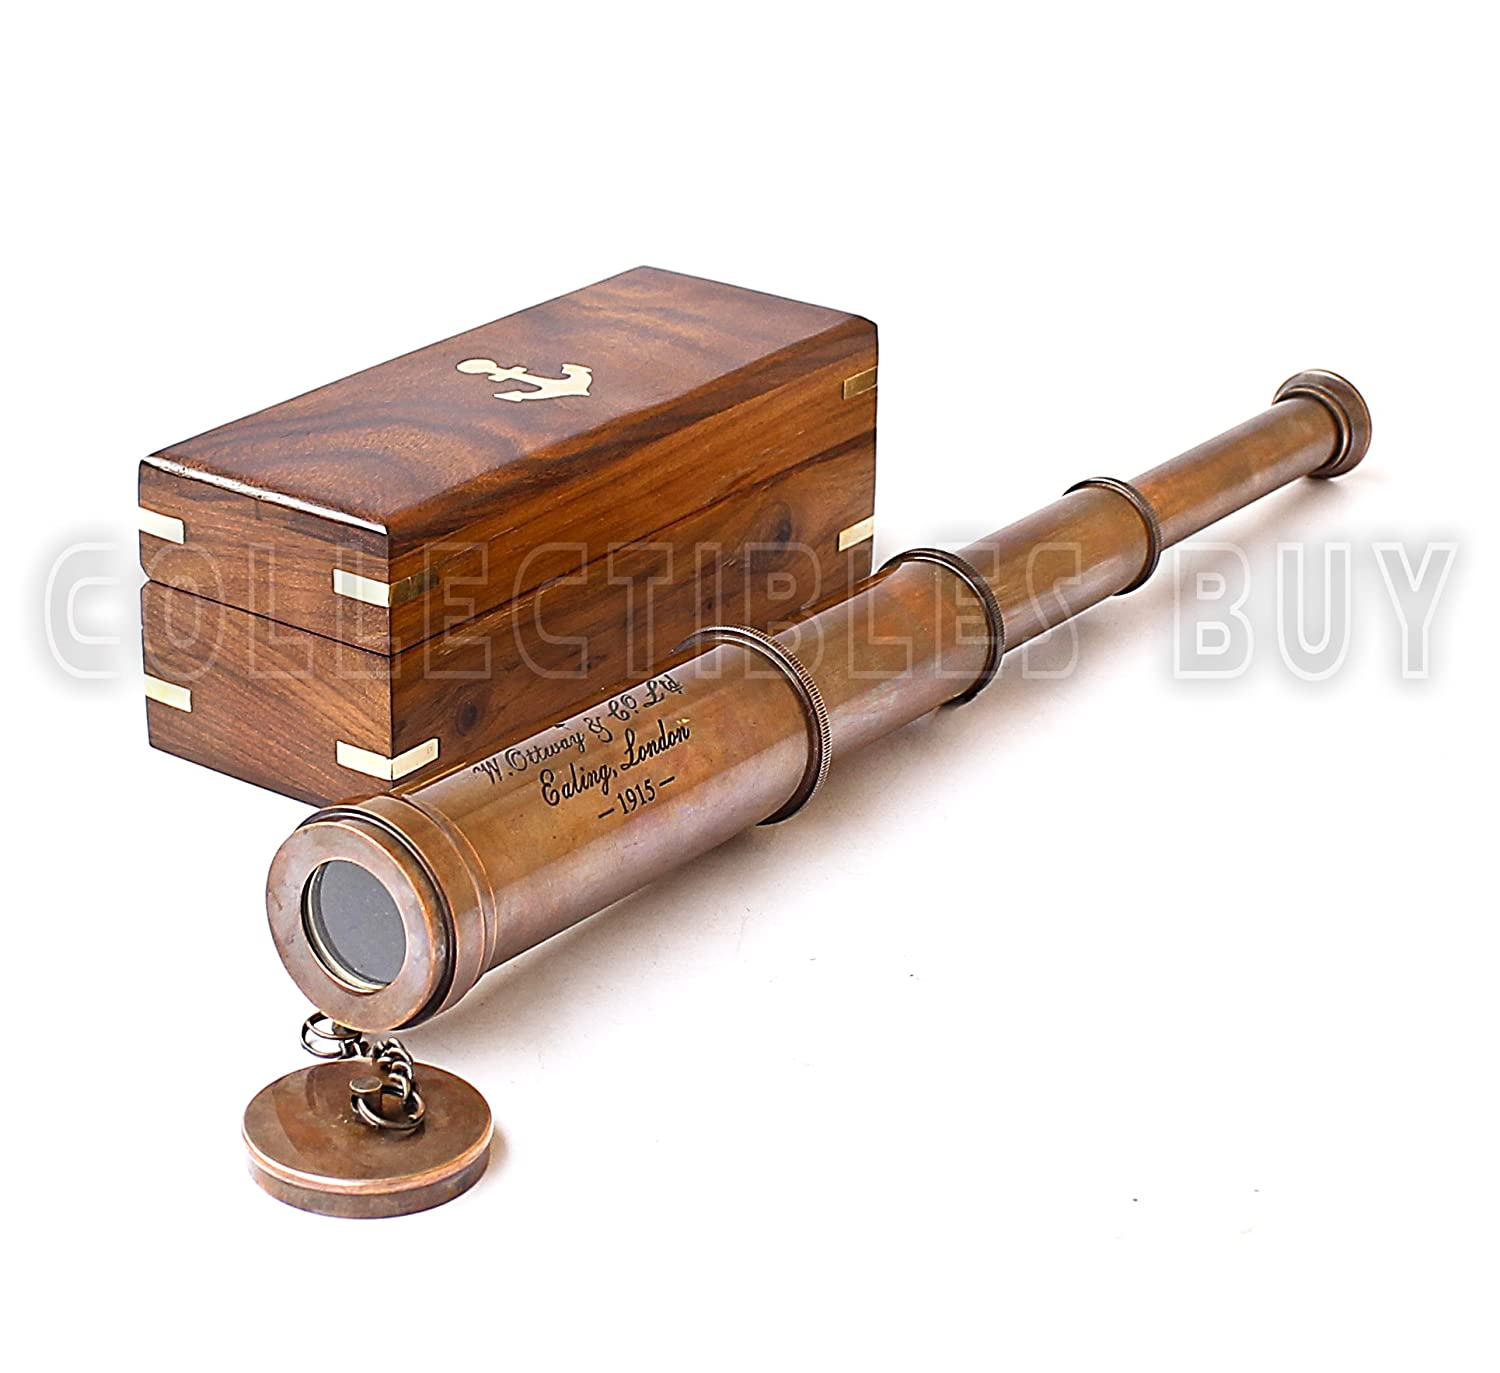 Maritime 1915 Marine Maritime Victorian Brass Vintage Solid Style Telescope Antique Gift Other Maritime Antiques